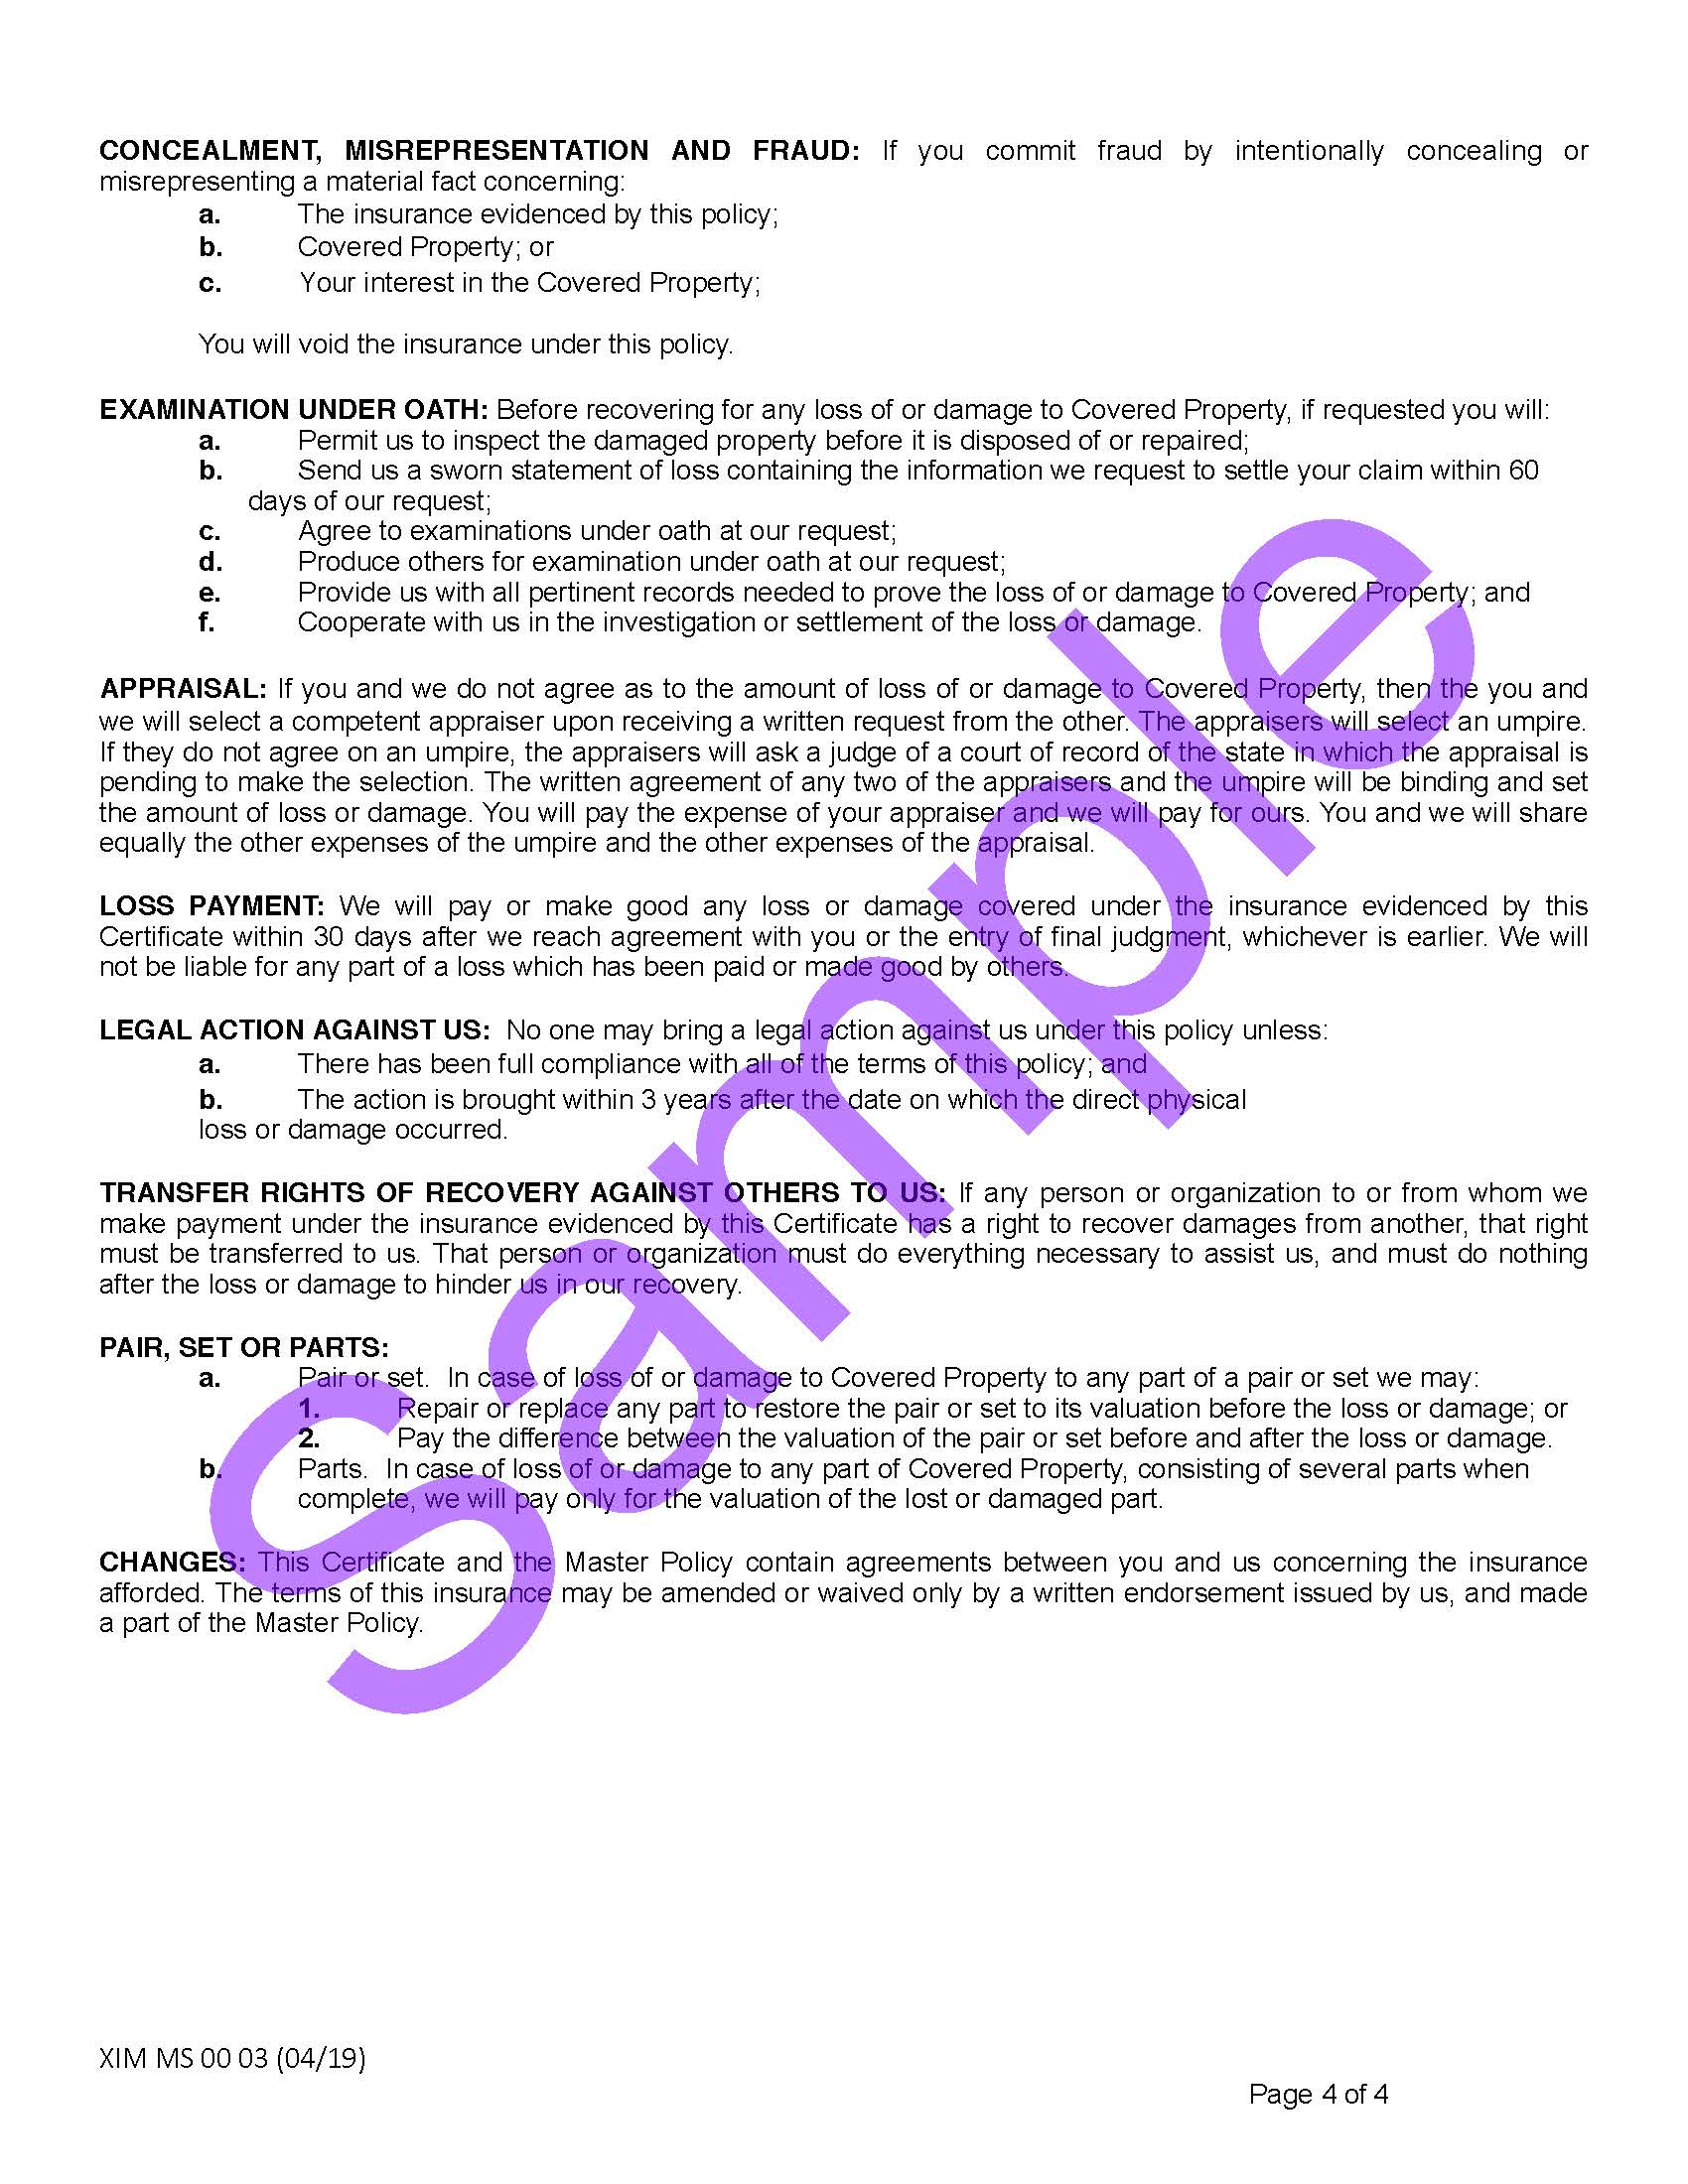 XIM MS 00 03 04 19 Mississippi Certificate of InsuranceSample_Page_4.jpg